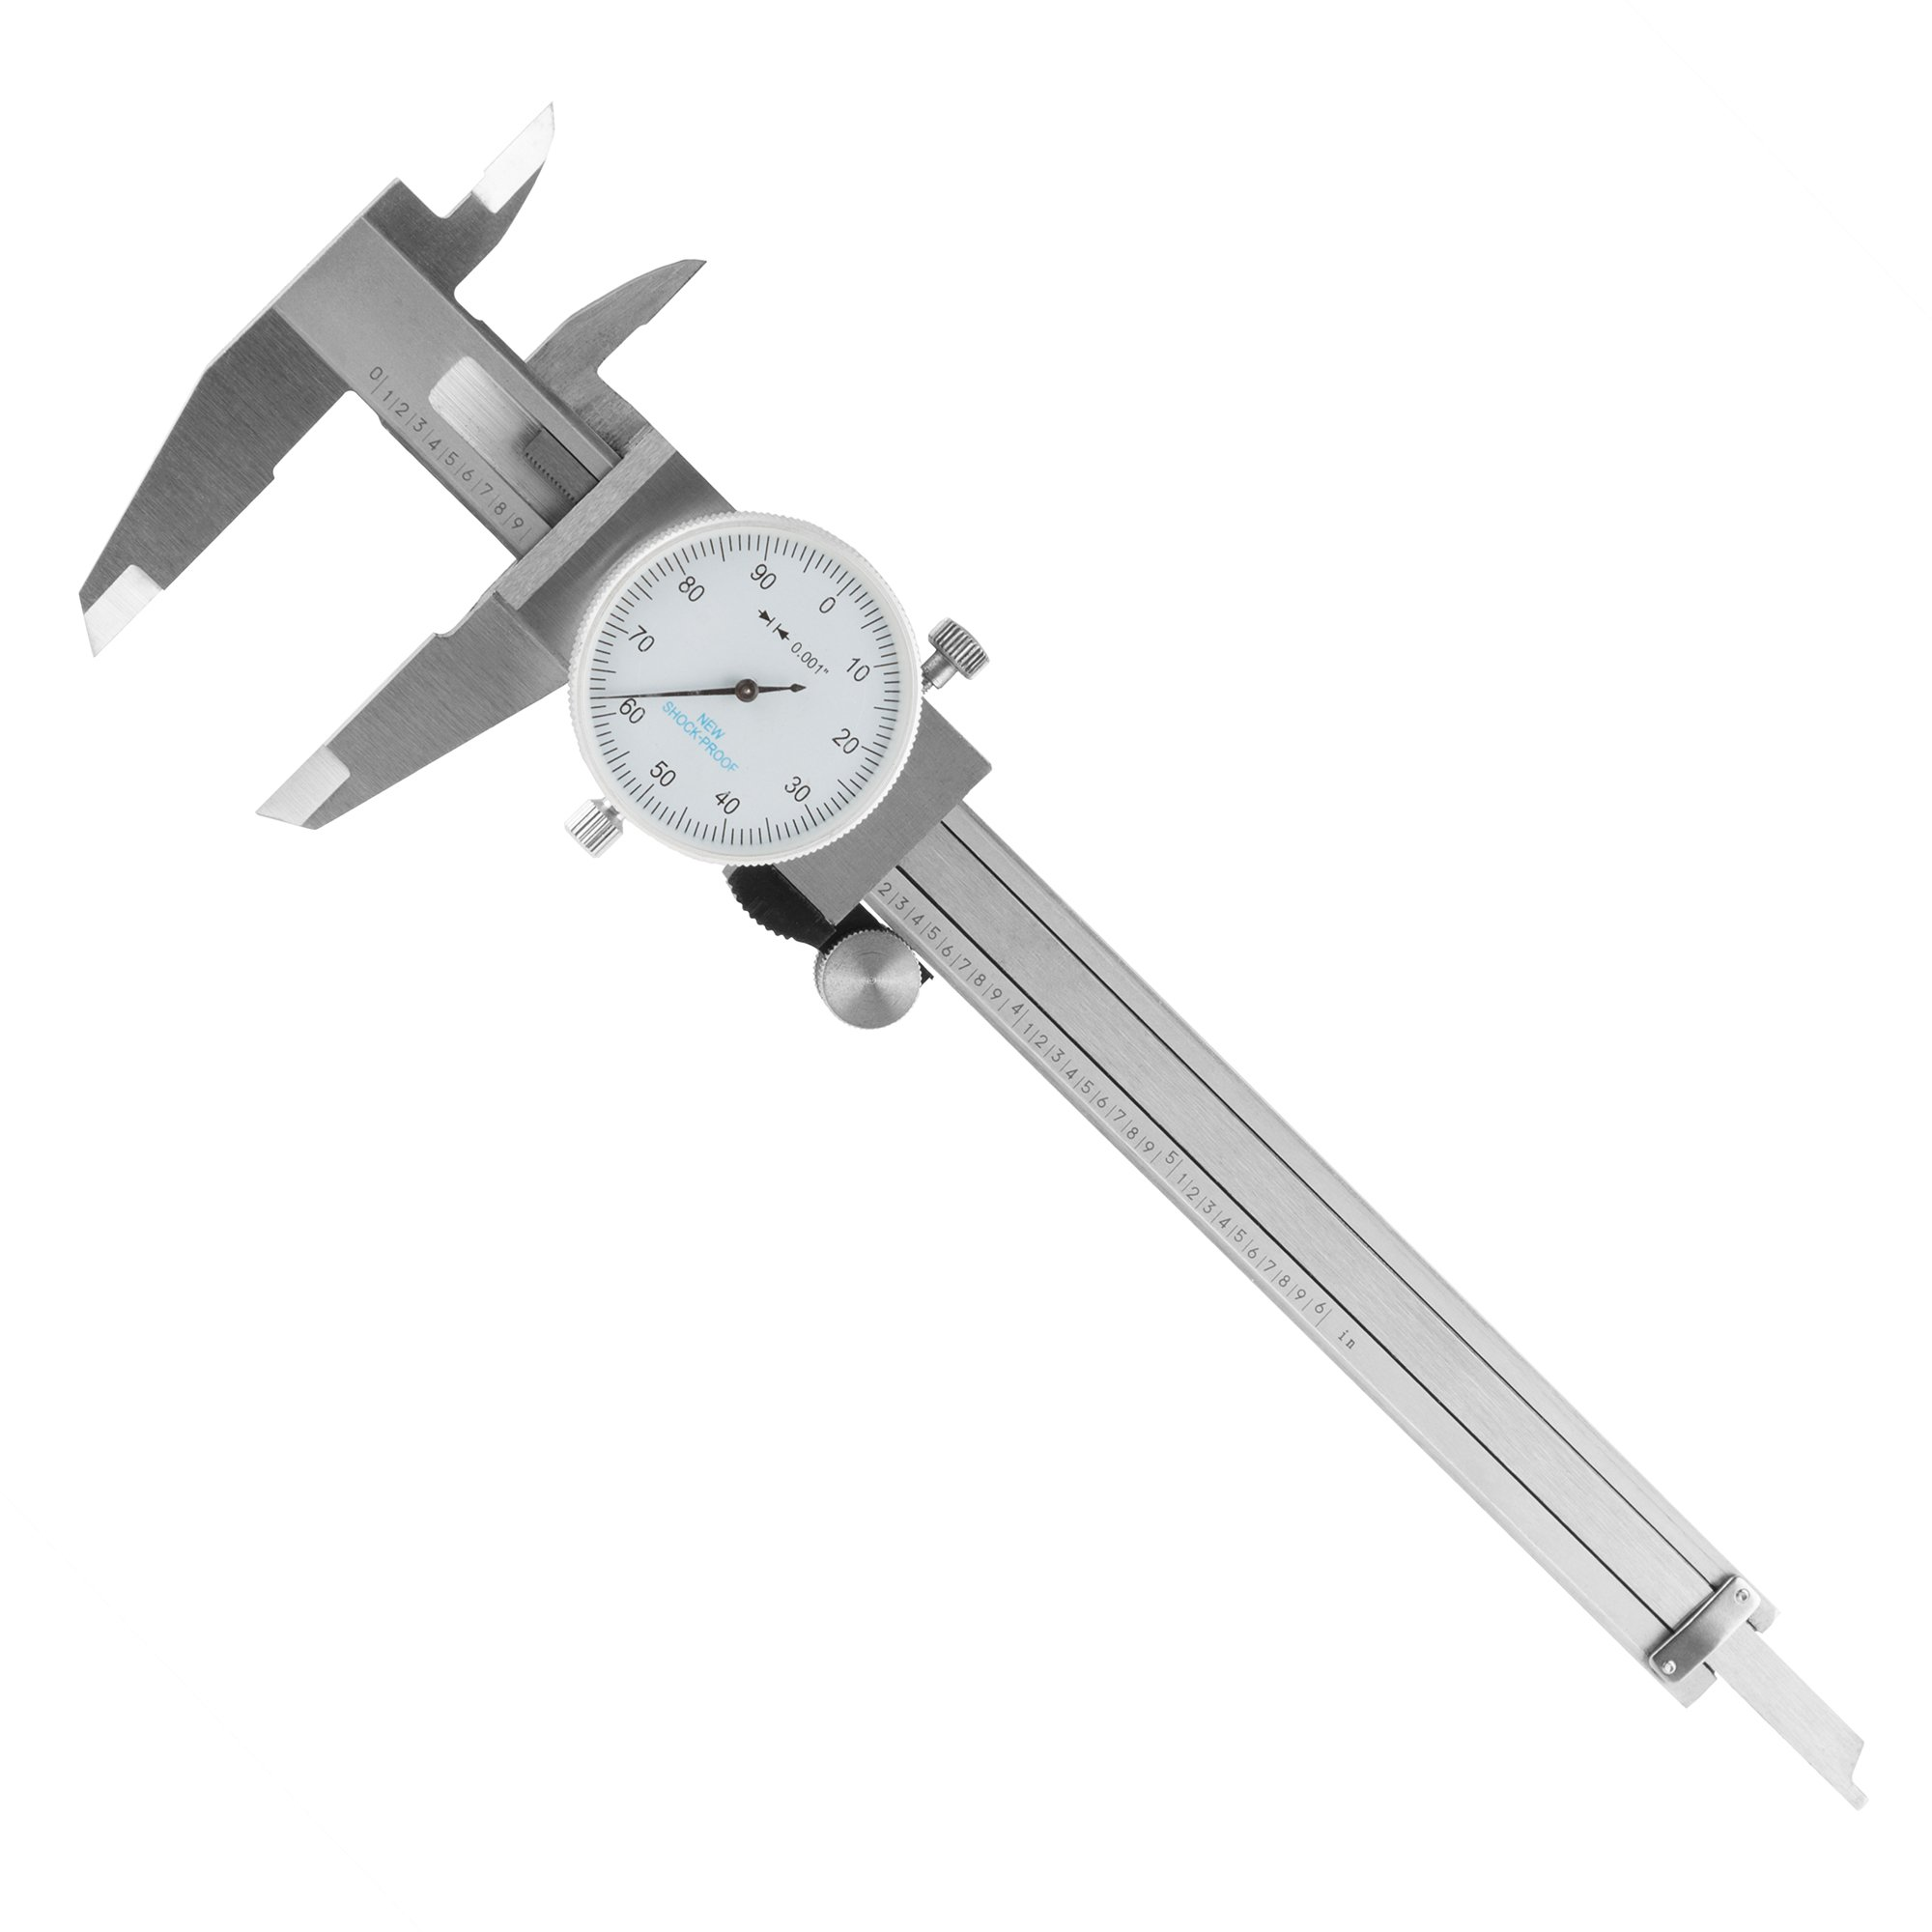 Dial Caliper- Stainless Steel and Shock Proof Tool With Plastic Carry Case, 0-6 Inch Measuring Range For Accurate Measurements by Stalwart